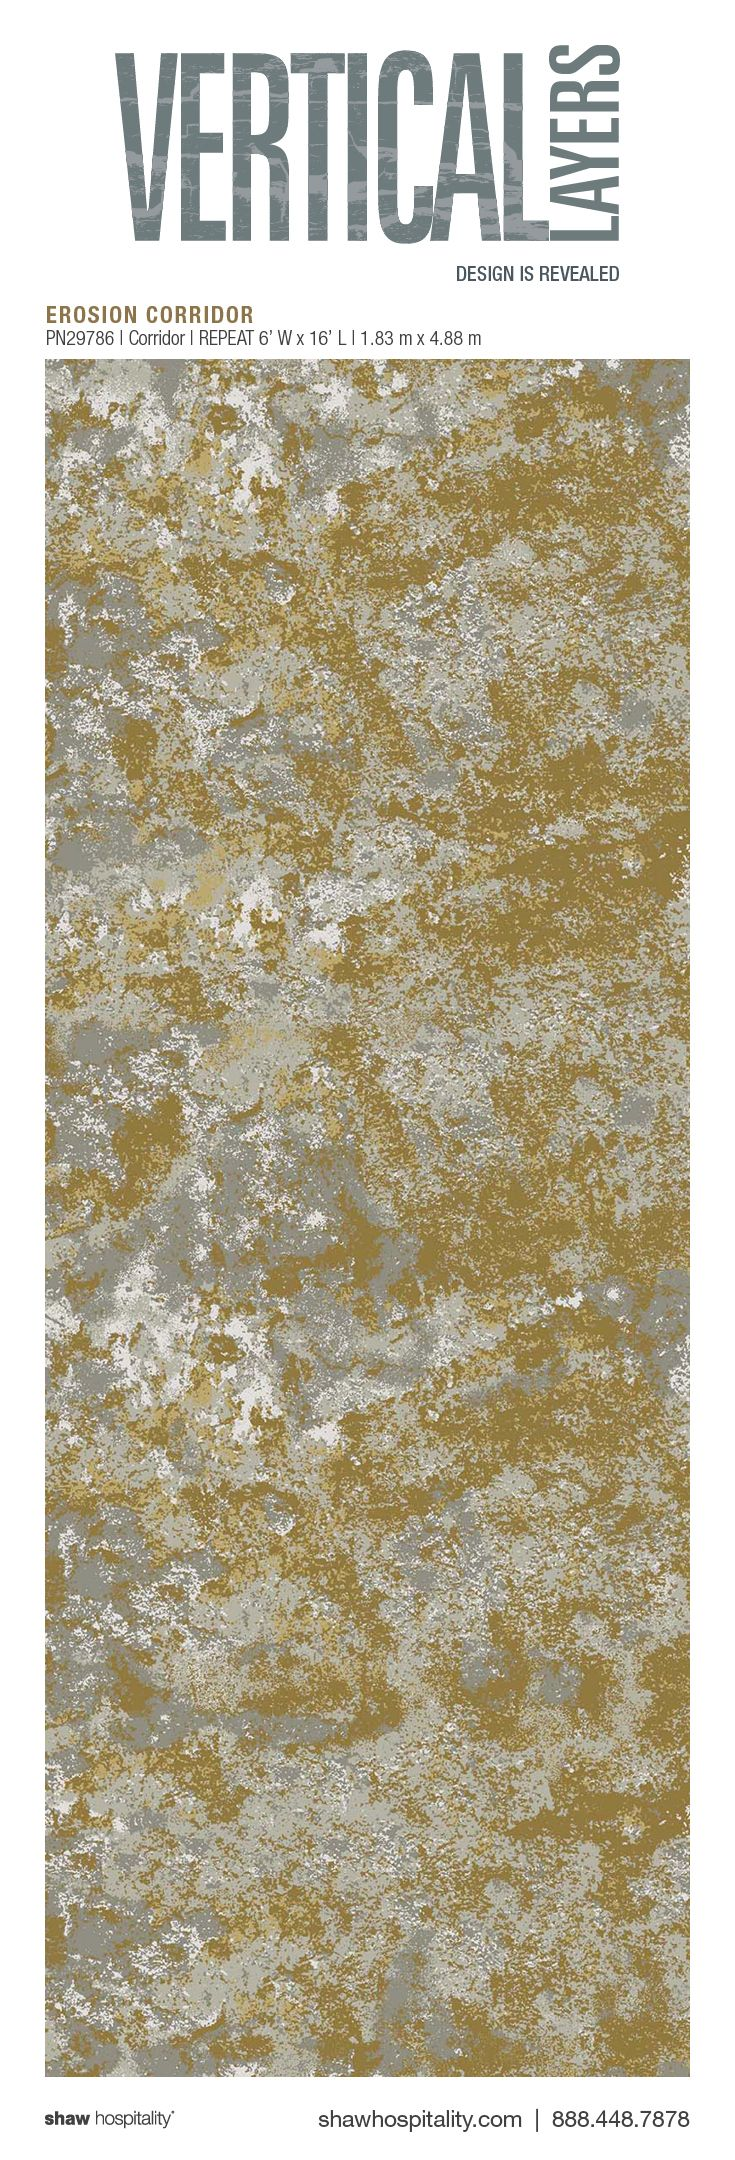 Erosion Corridor PN29786 Hospitality Carpet For